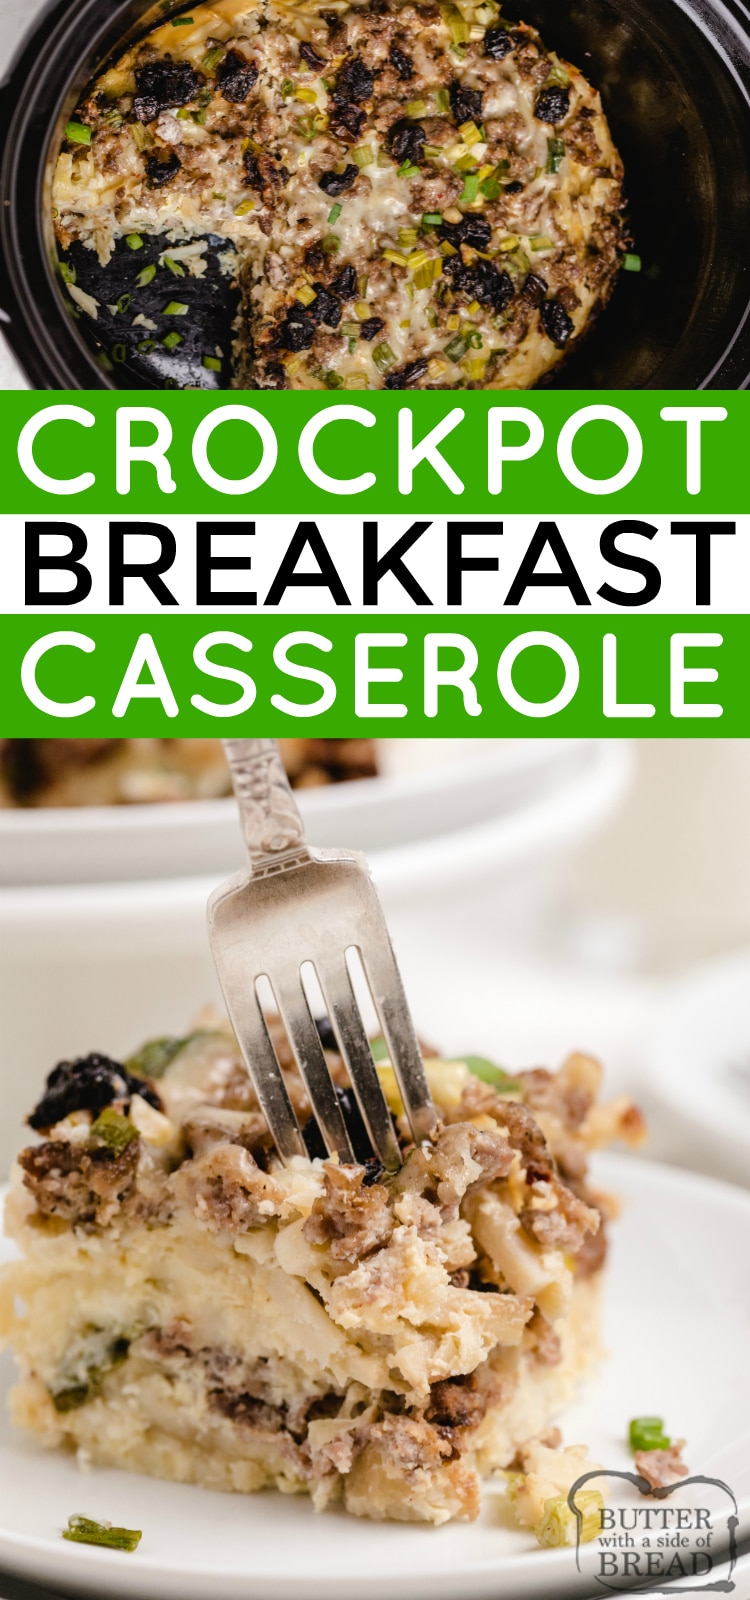 Crockpot Breakfast Casserole cooks overnight to be ready when you wake up in the morning! Slow Cooker Breakfast casserole recipe is a high protein breakfast made with hash browns, sausage, cheese, eggs and veggies.